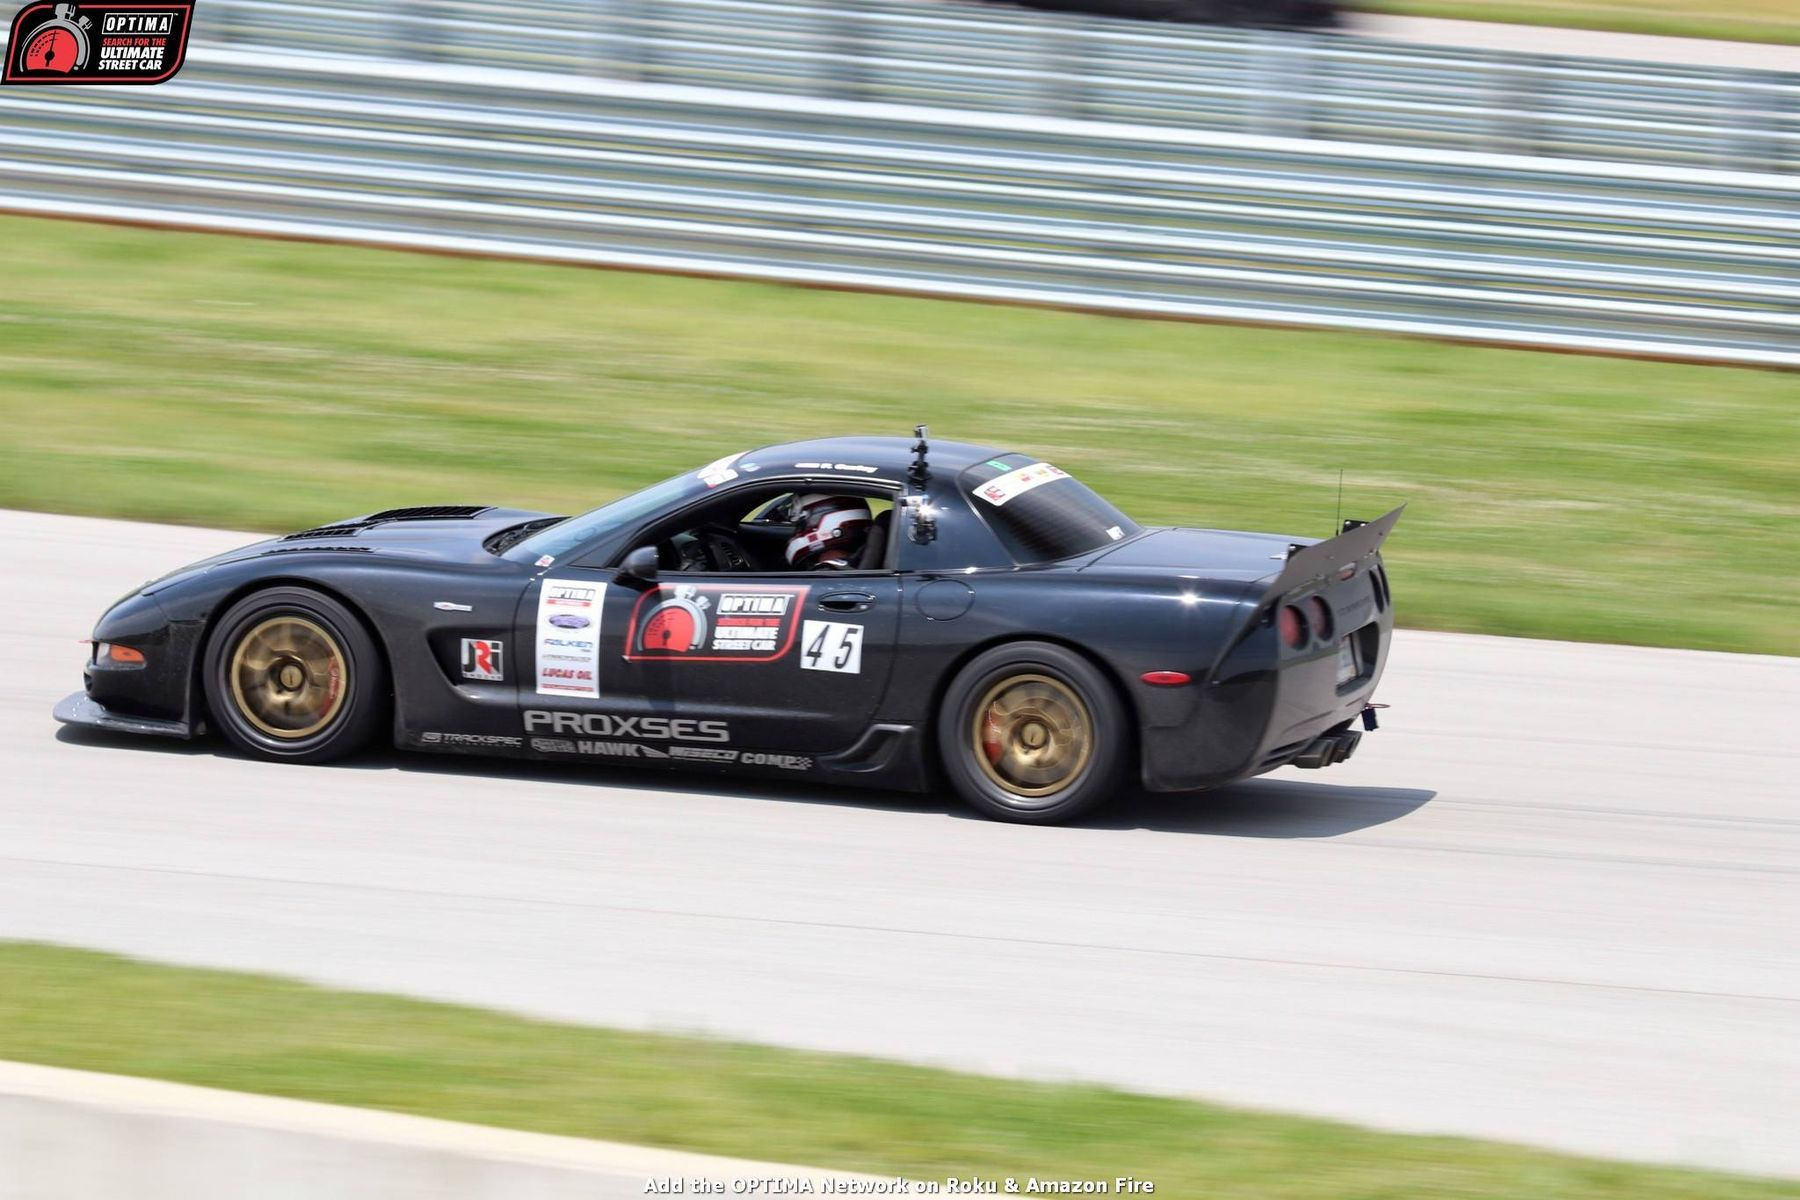 1998 Chevrolet Corvette Z06 | Paul Curley Wins USCA GTS Class at NCM on Forgeline GA3R Wheels